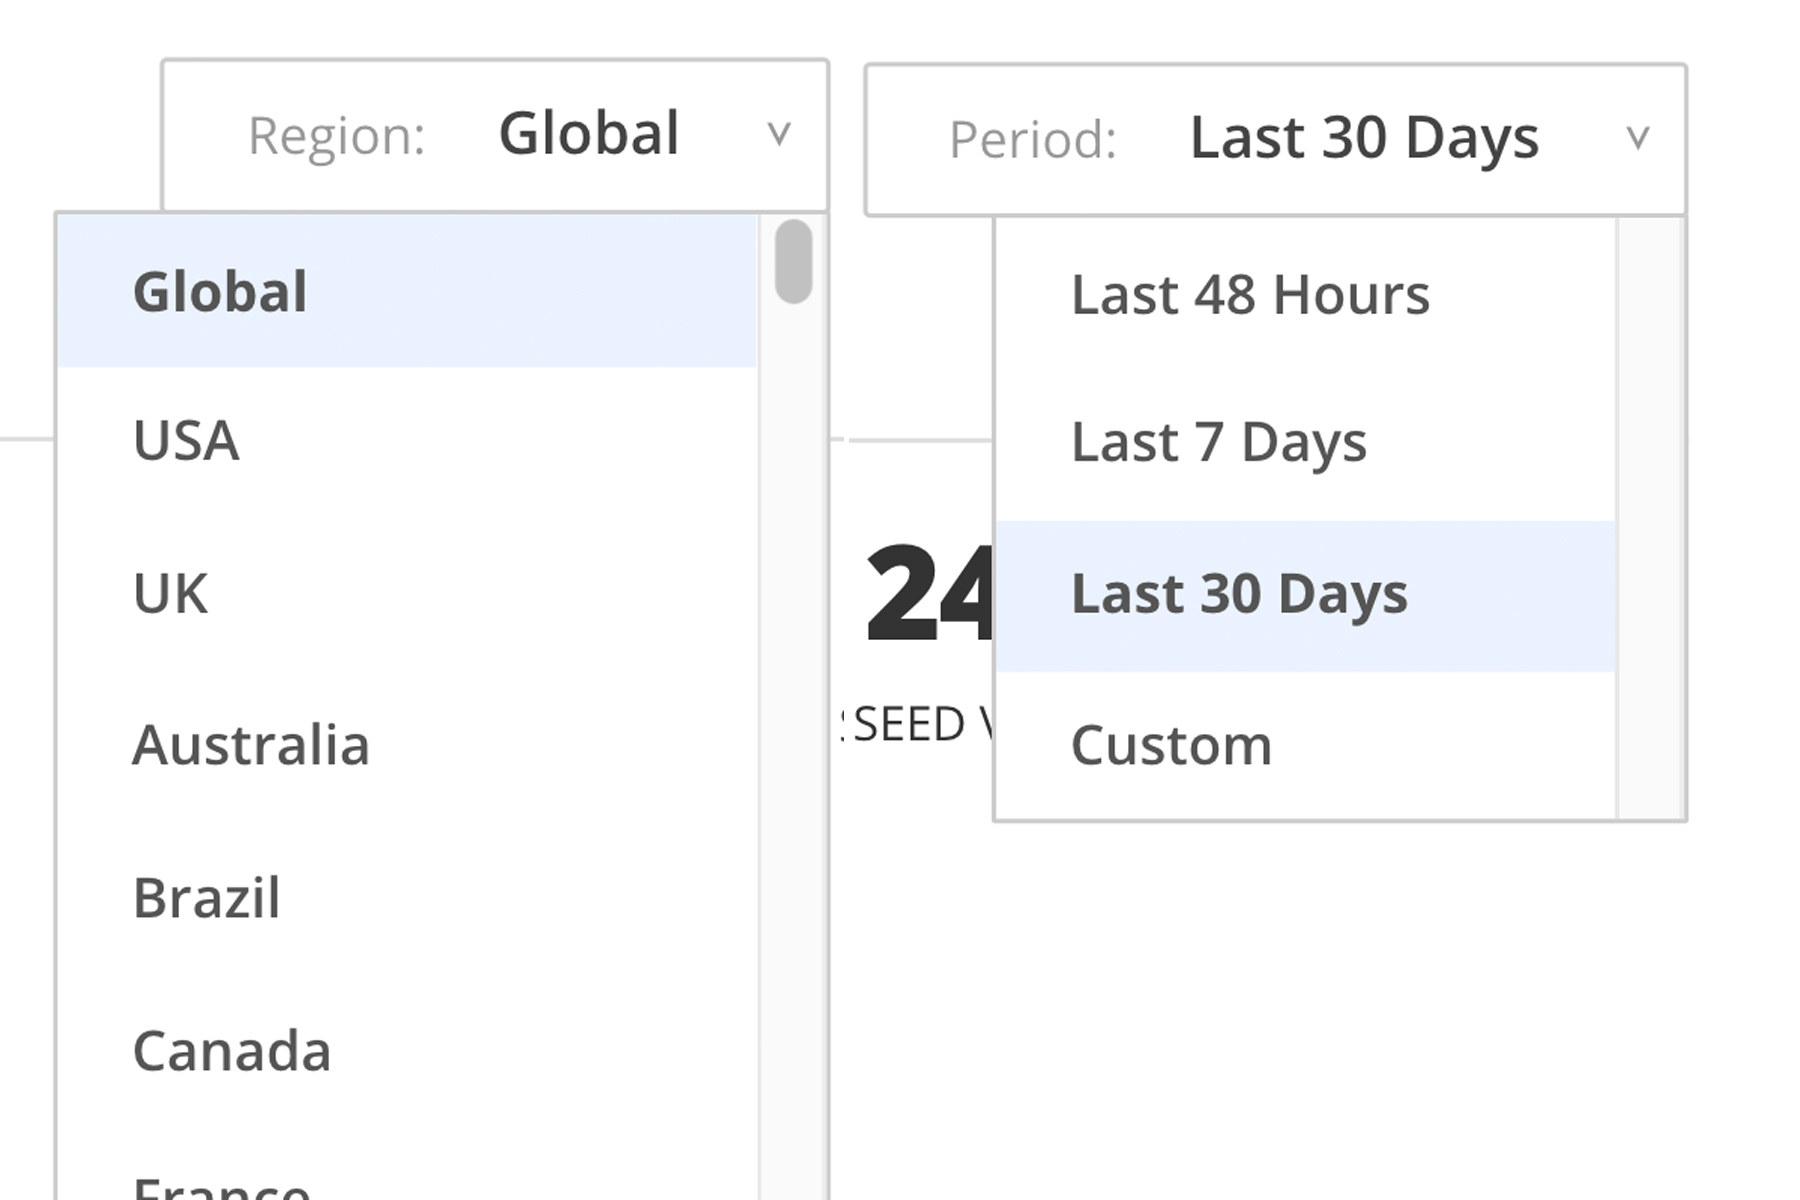 """two boxes with drop down menus. one says """"region"""" with options for country names and the other says """"period"""" with time frames like last 48 hours, last 7 days, last 30 days, and custom"""